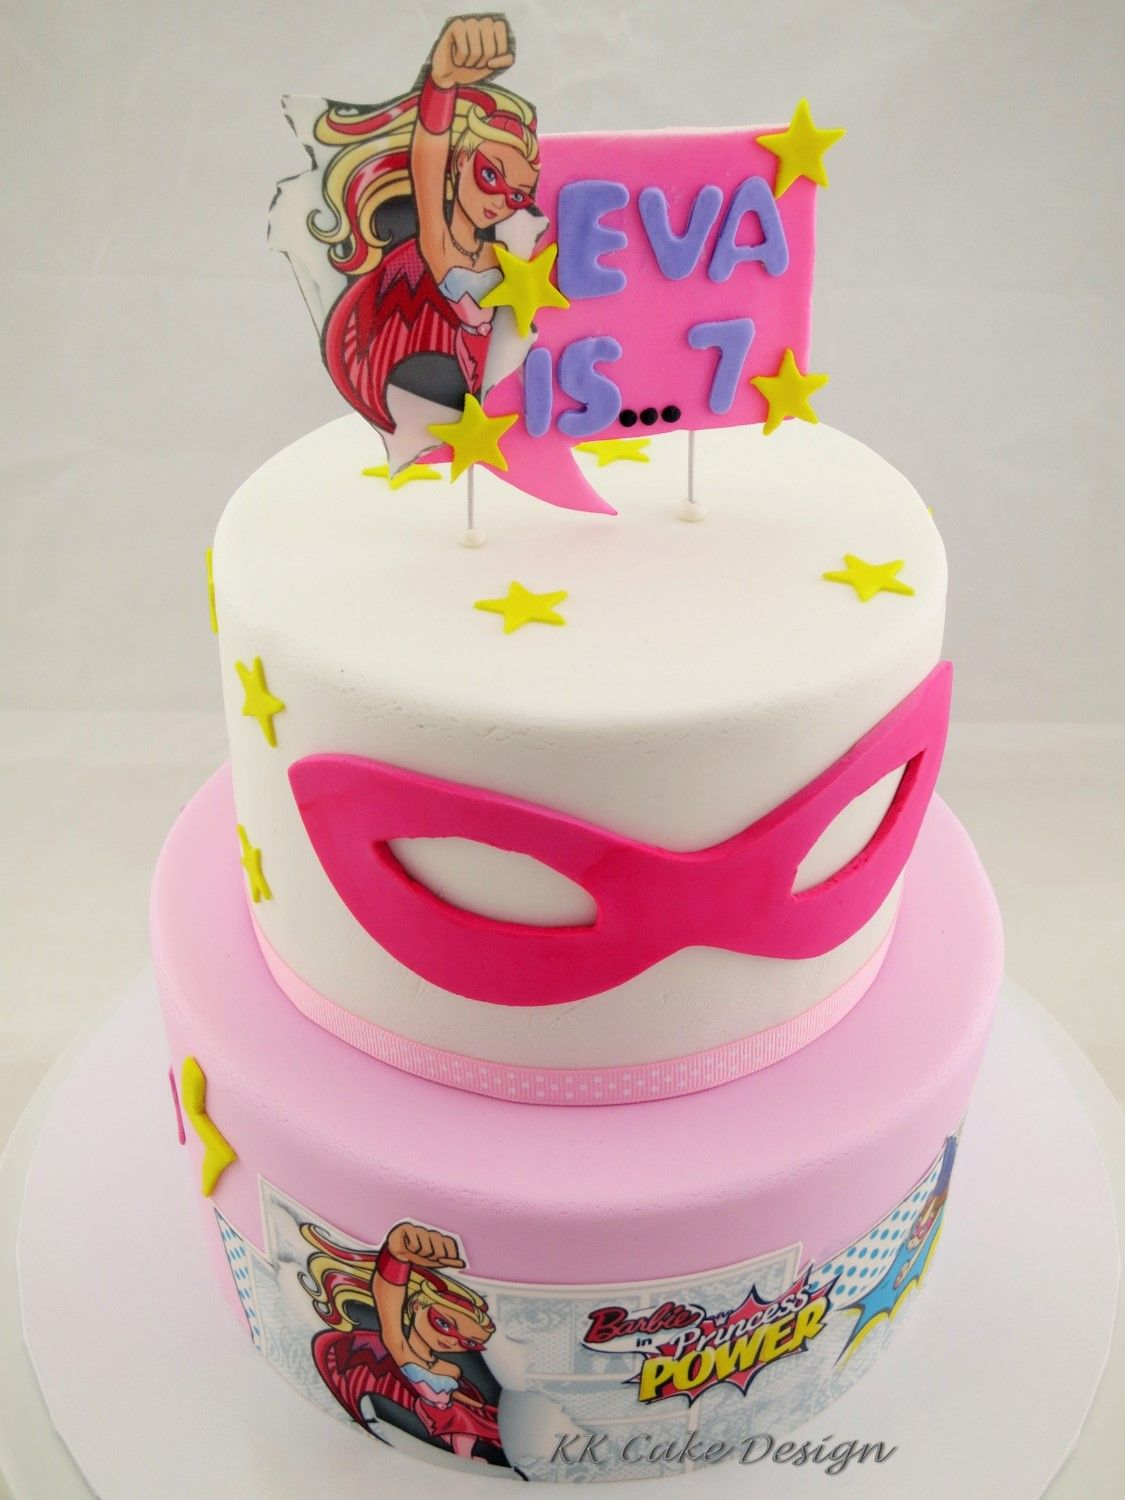 Barbie Princess Power chocolate and vanilla cake